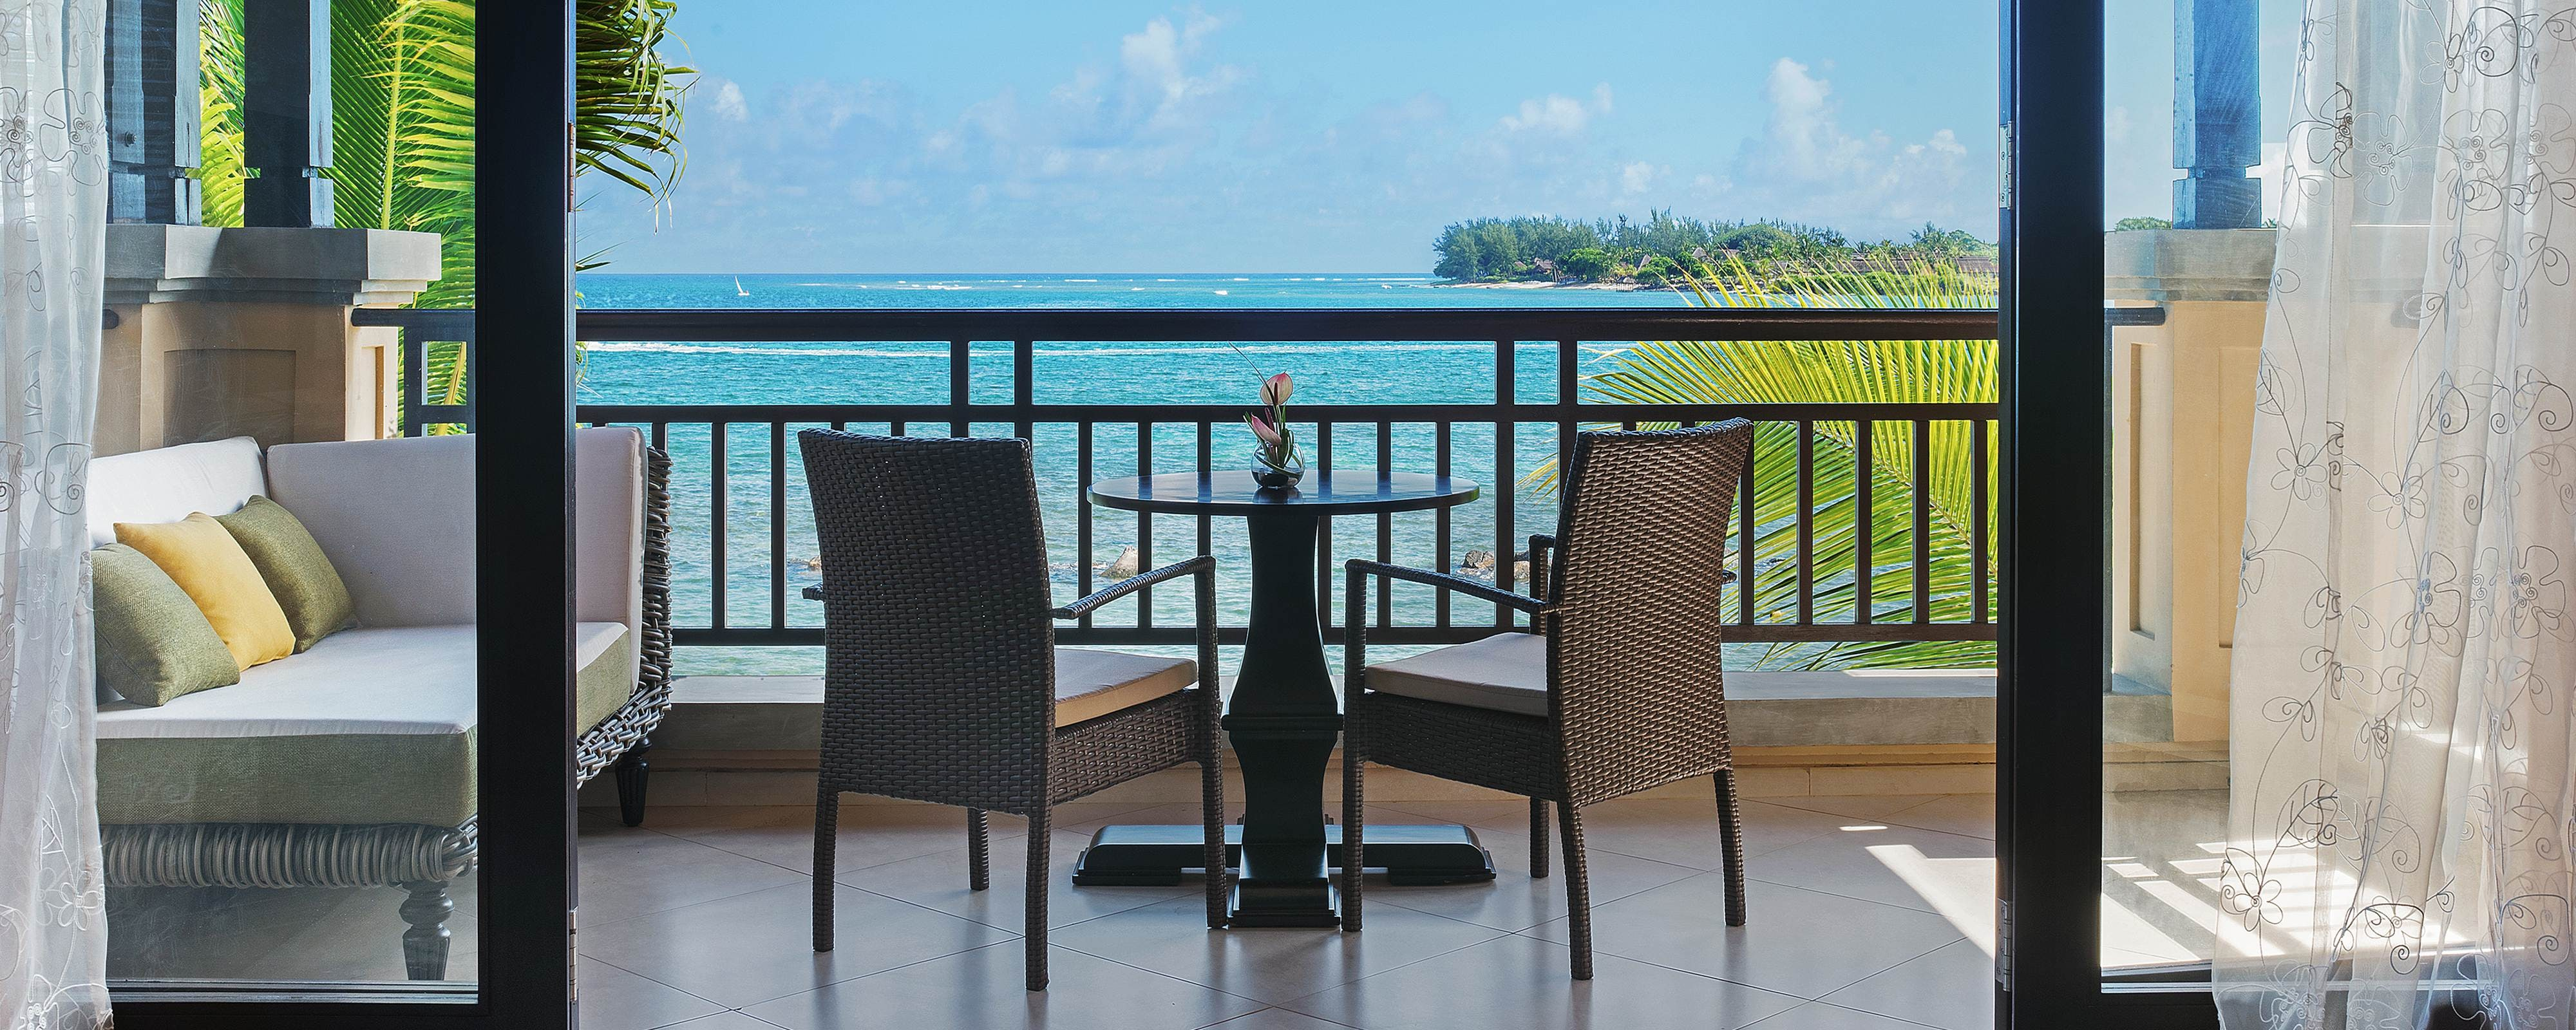 Ocean Suite - Terrace with Ocean View